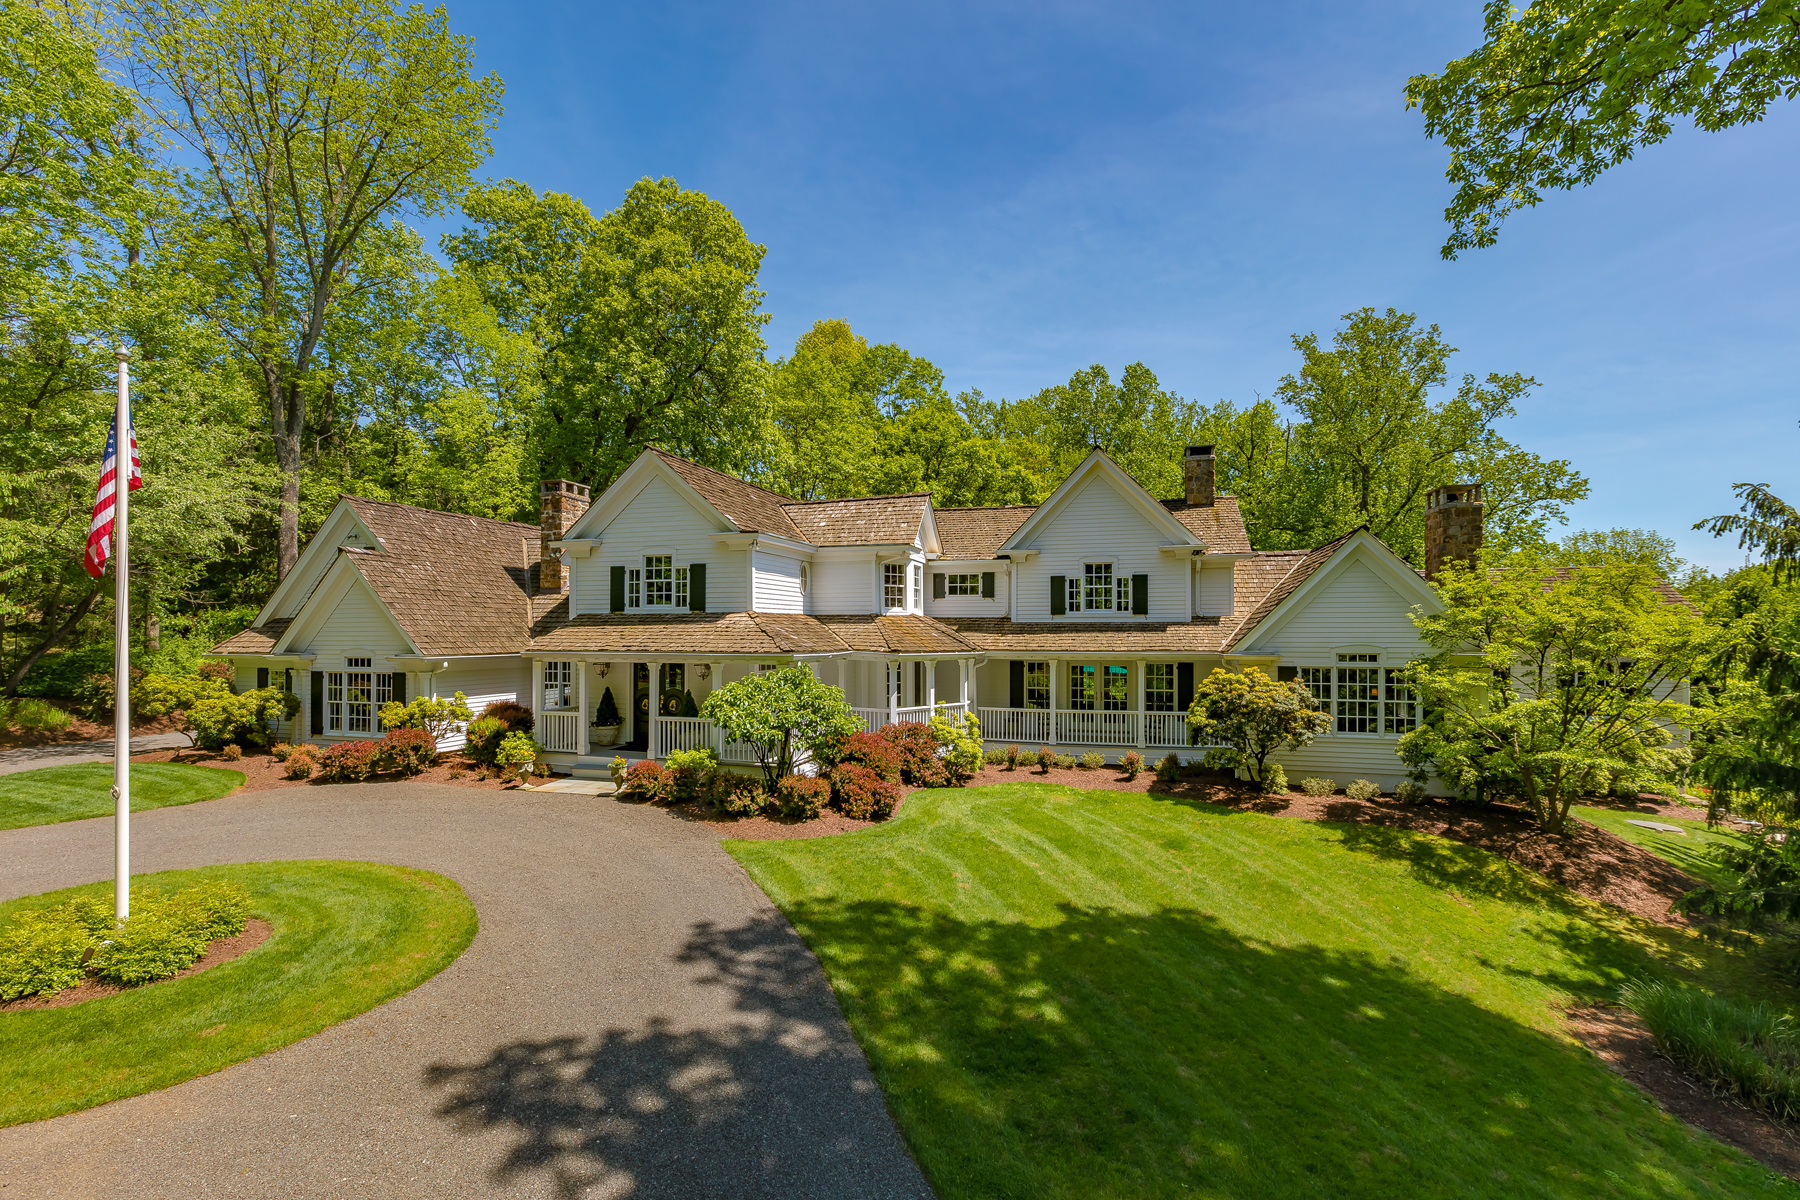 Single Family Homes for Sale at Sophisticated Country Retreat 70 Post Kennel Road Bernardsville, New Jersey 07924 United States